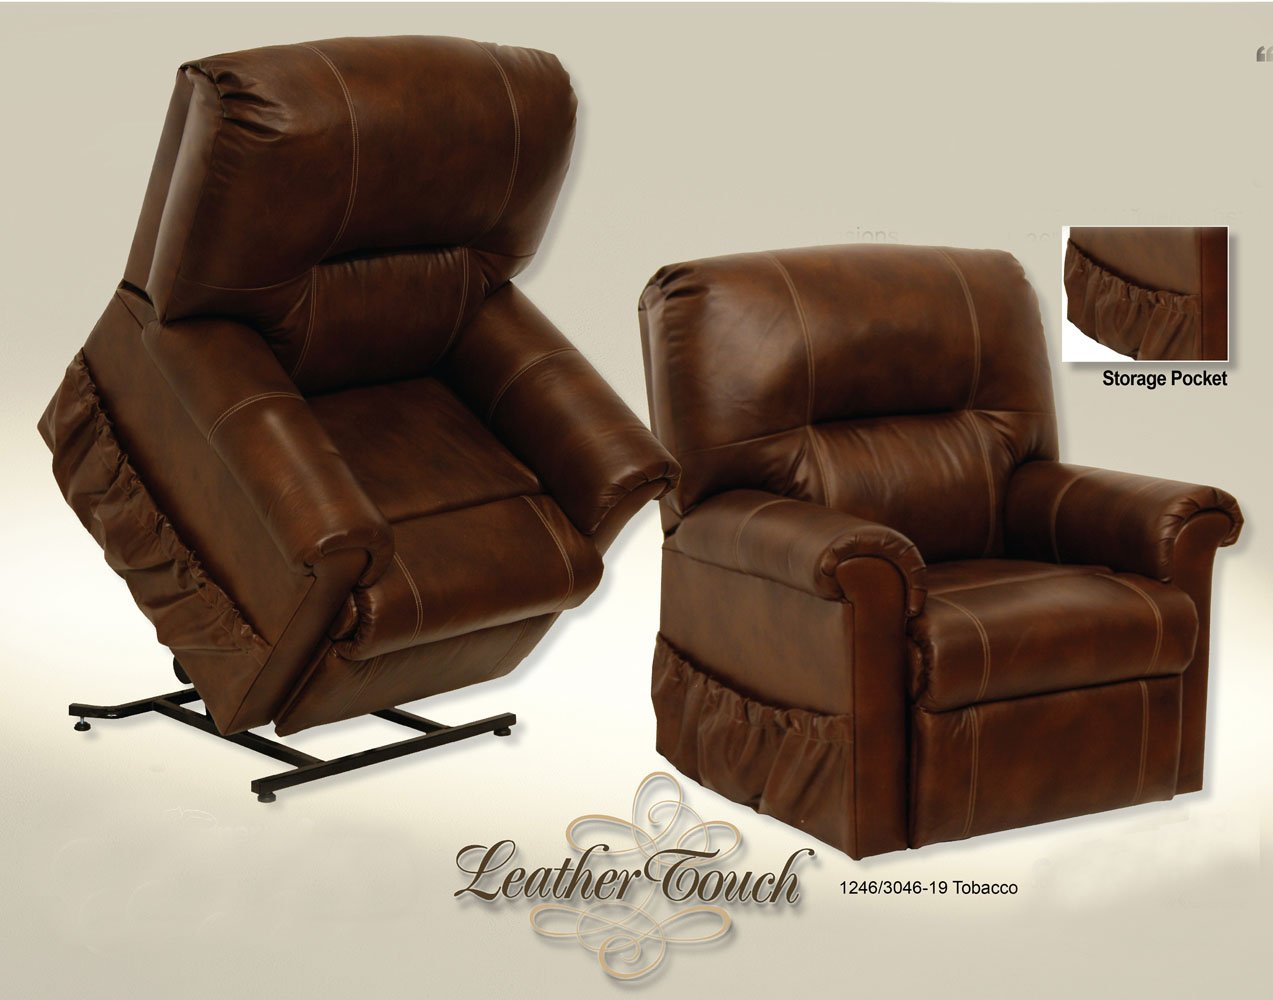 best heavy duty lift chairs vanity with chair and mirror what 39s the recliners for big men up to 500